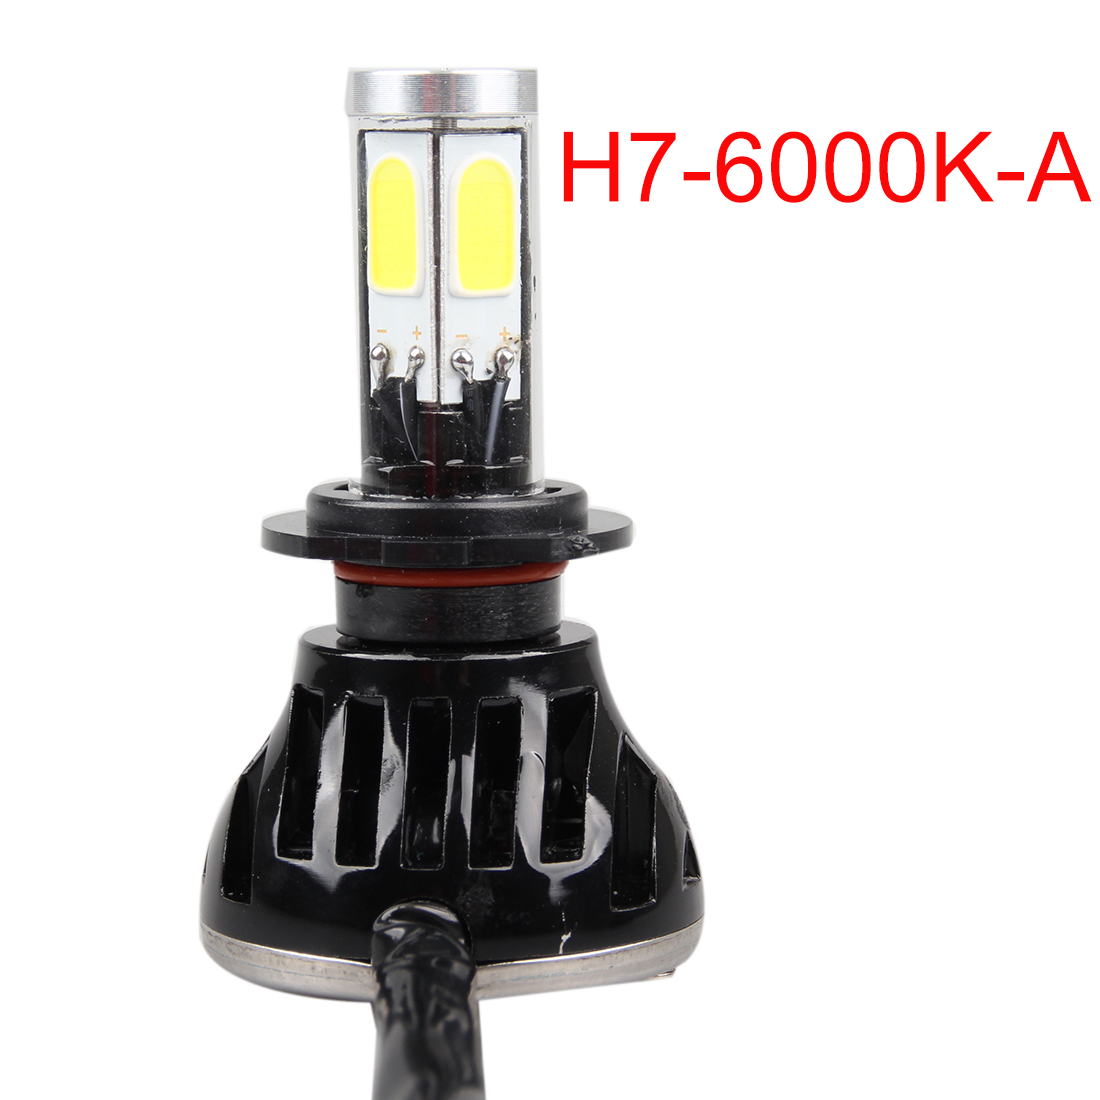 Tonewan 6000K Led Car Auto Headlight H7 80W 8000LM 4 COB Led All In One White Bulb for Automotives H<br>